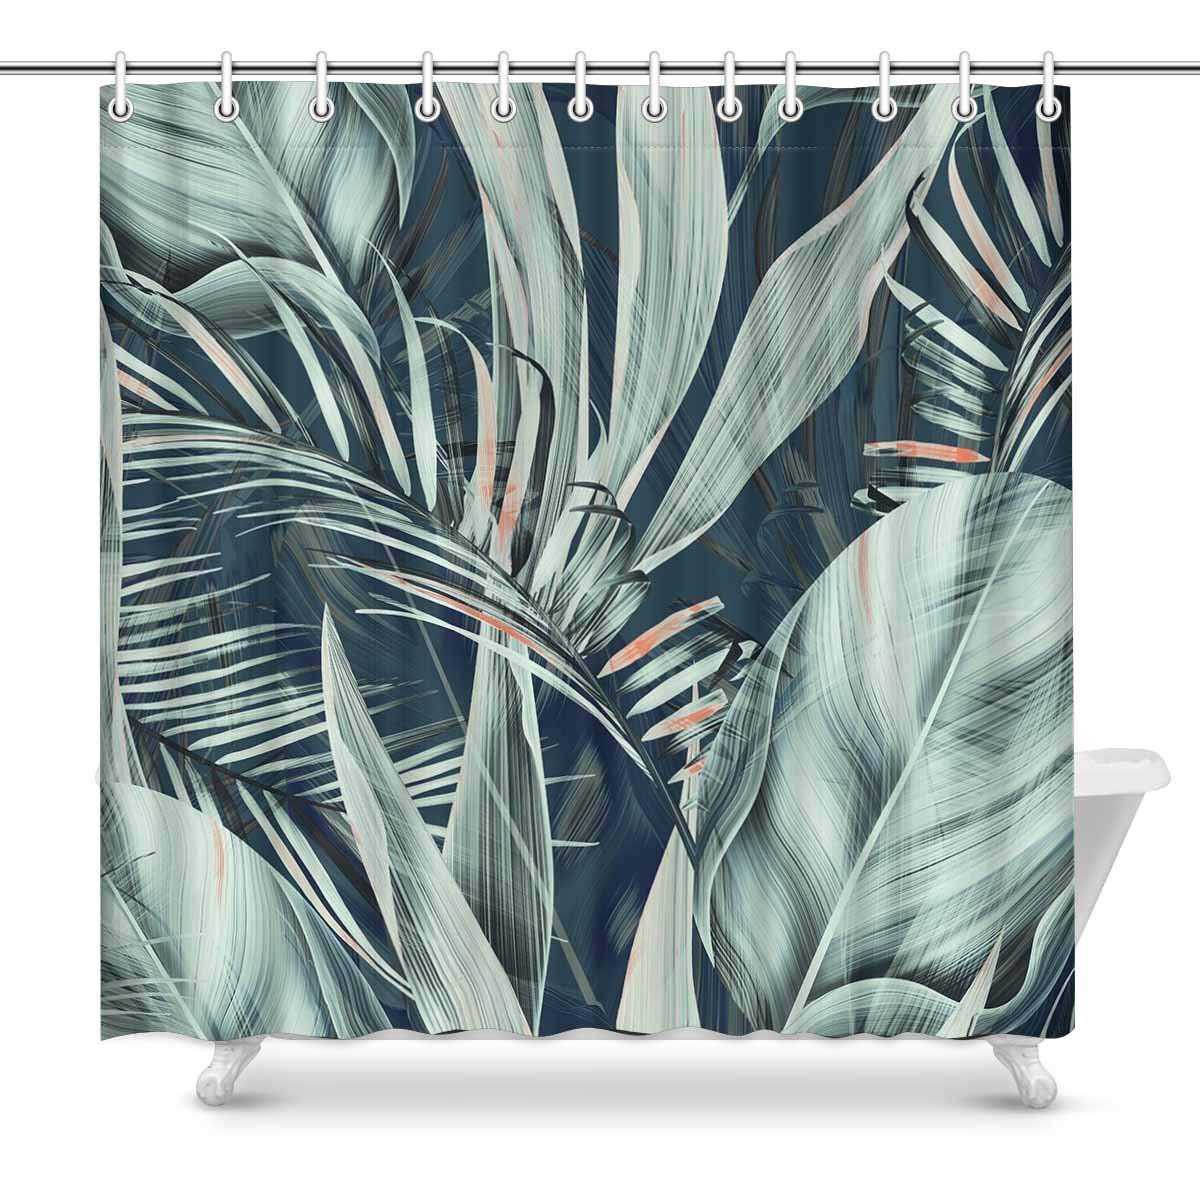 GCKG Tropical Flower Plant Leaf Pattern Shower Curtain Retro Botanical Style Polyester Fabric Bathroom Sets 66x72 Inches